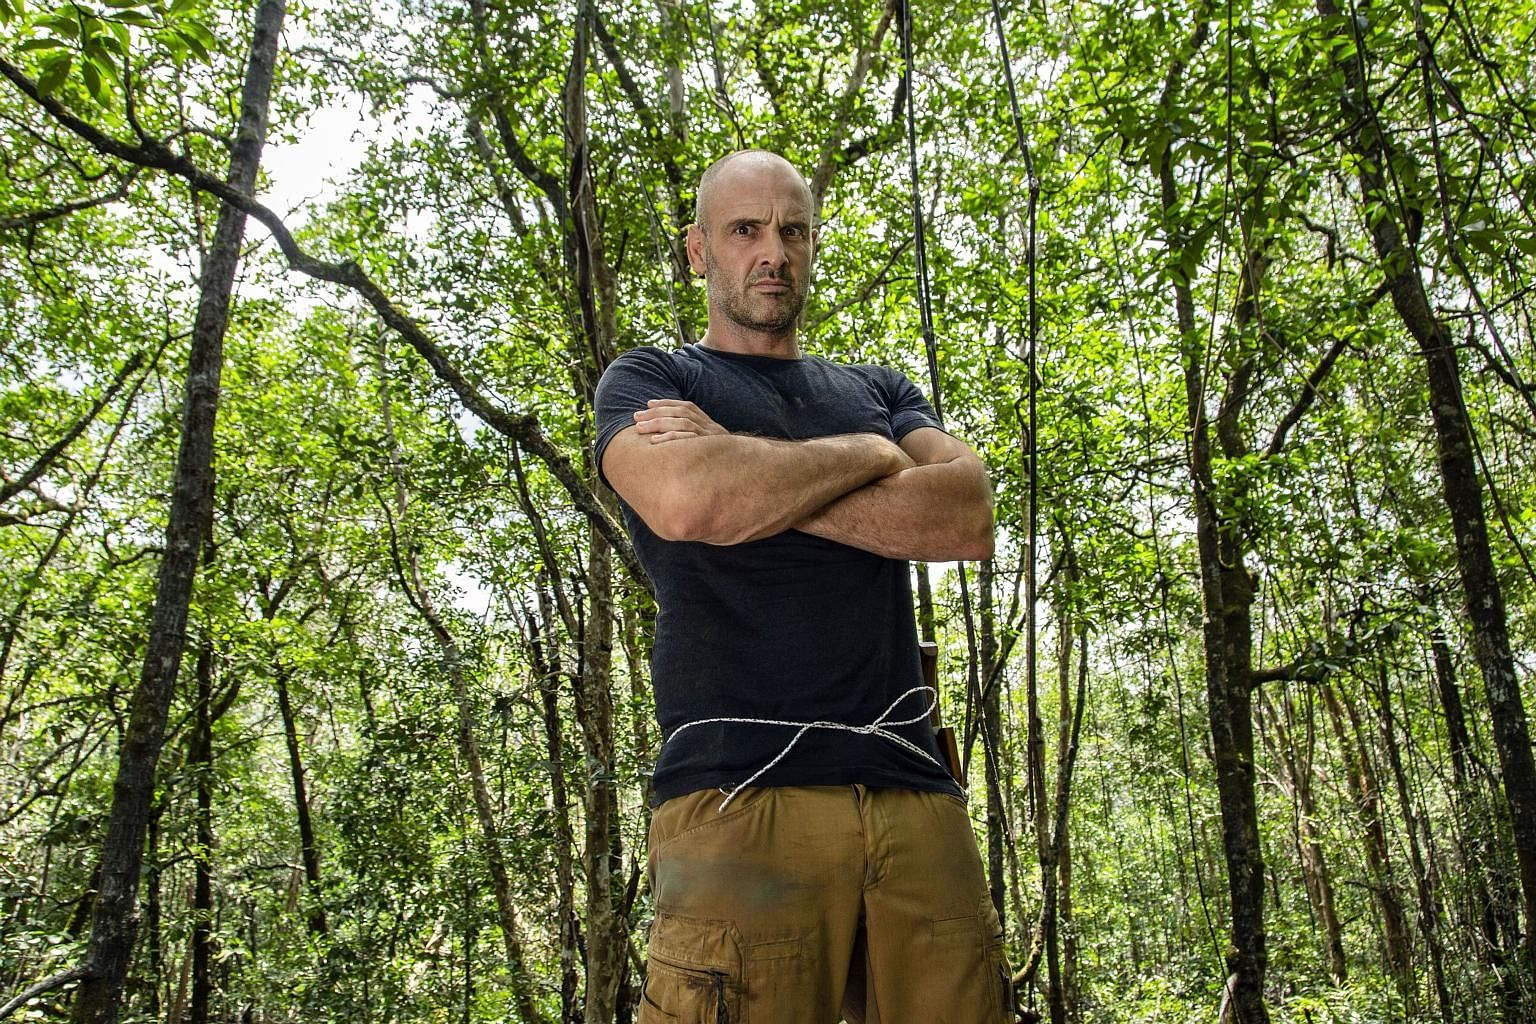 First Man Out pits British explorer Ed Stafford against other adventurers and survivalists to see who can get out of some of the most hostile environments on the planet first.